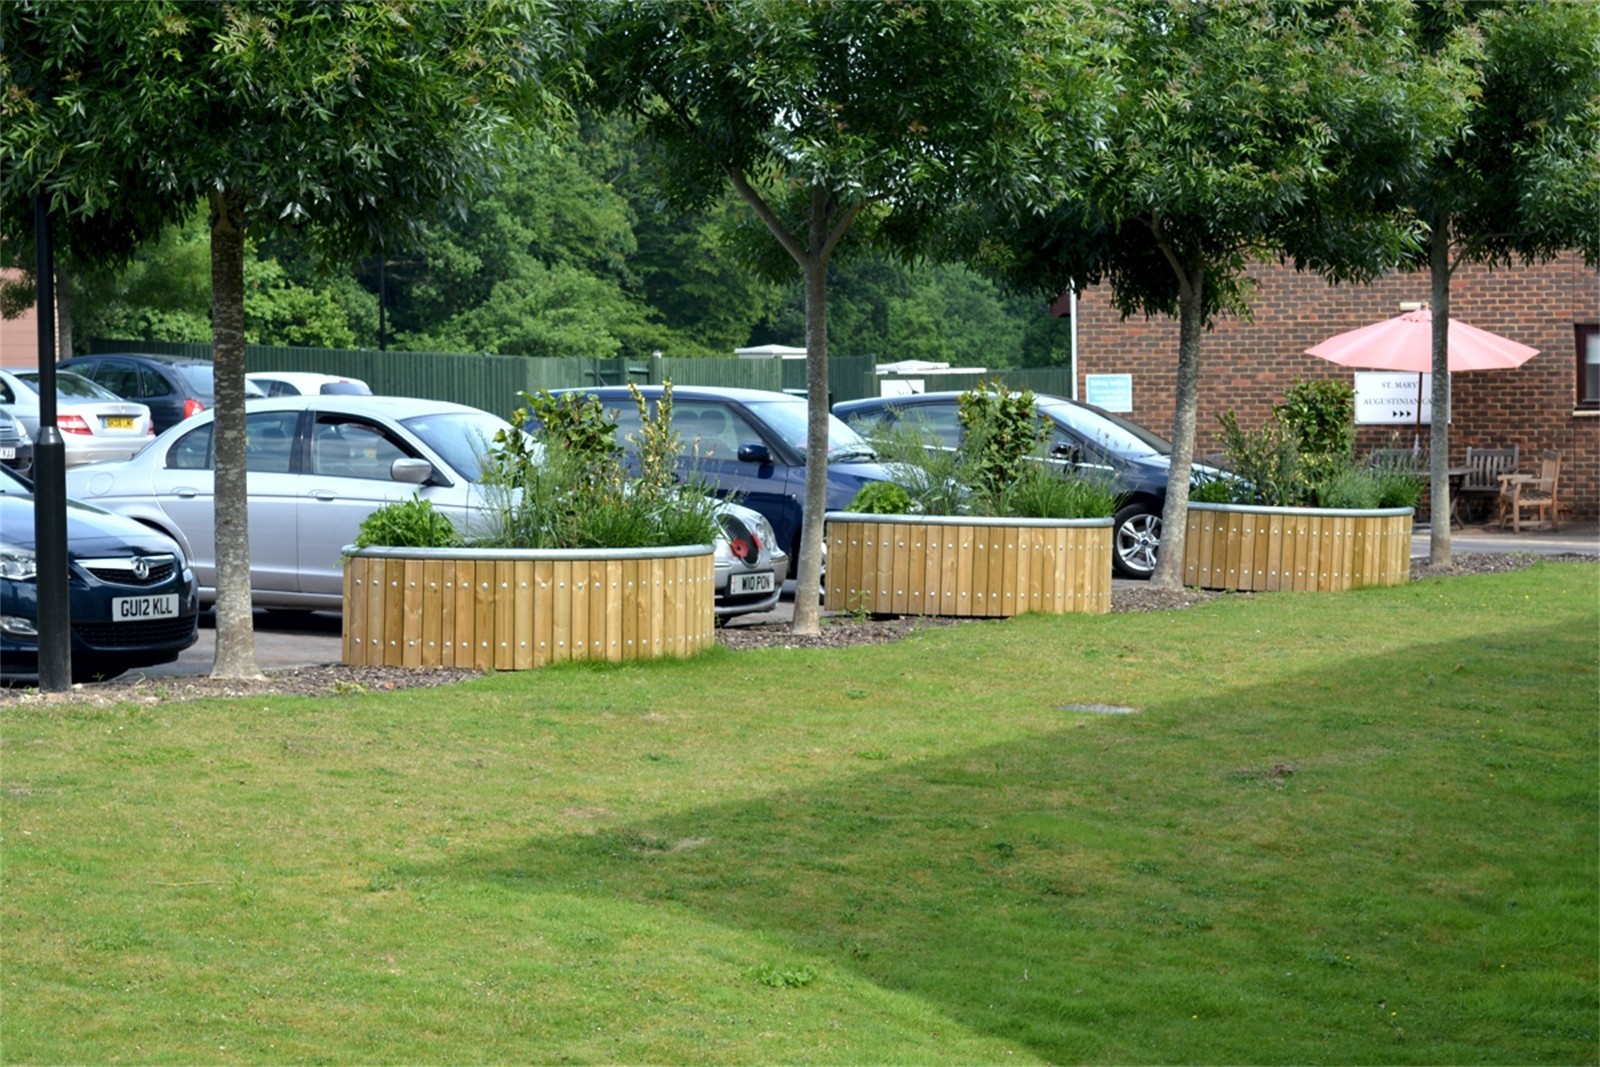 c12308 - St Georges Park Retreat, planters and seating